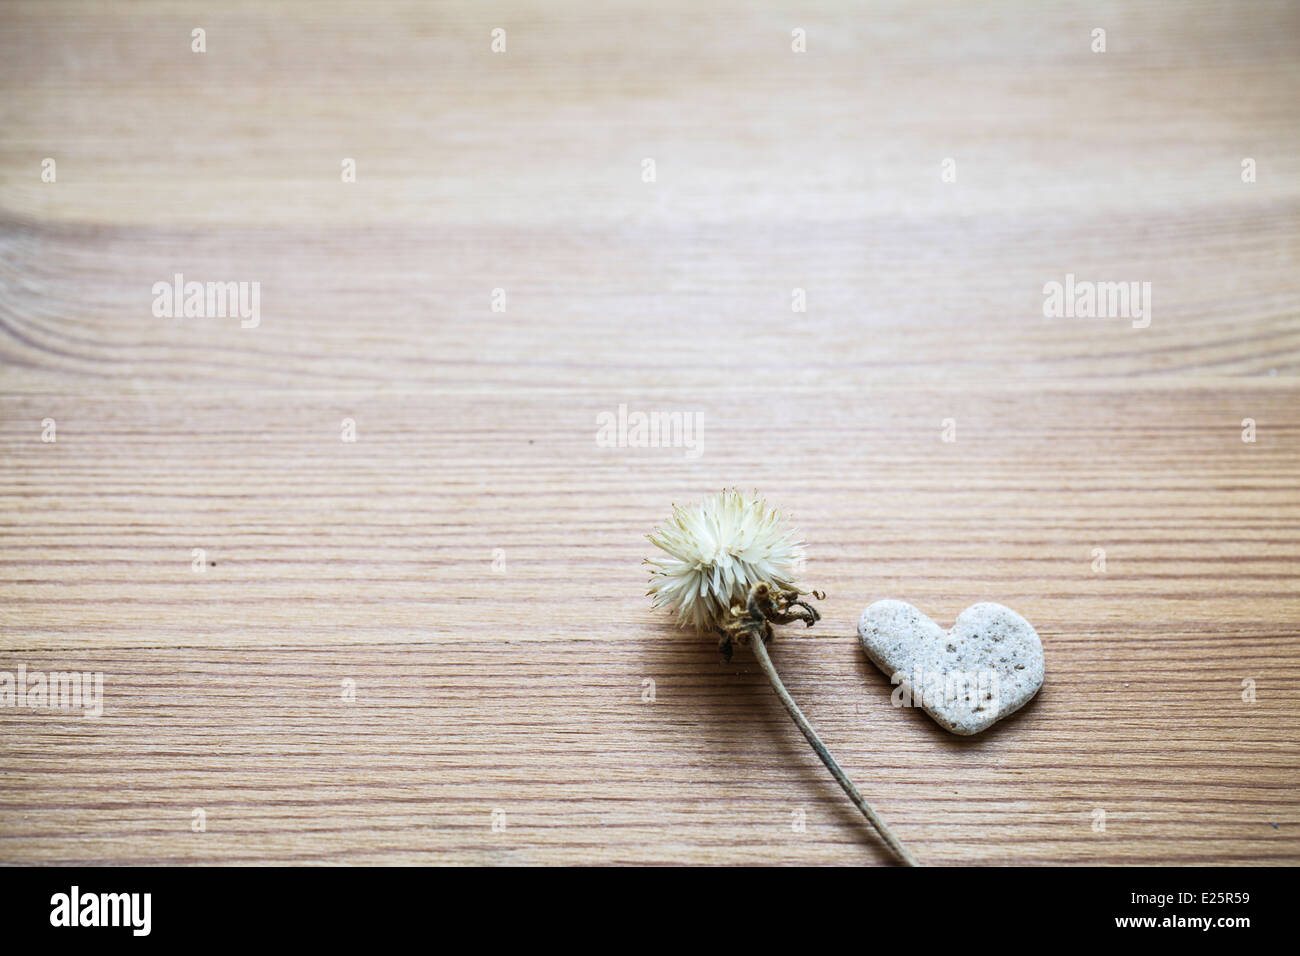 Flower and heart shapes stone on wooden background - Stock Image